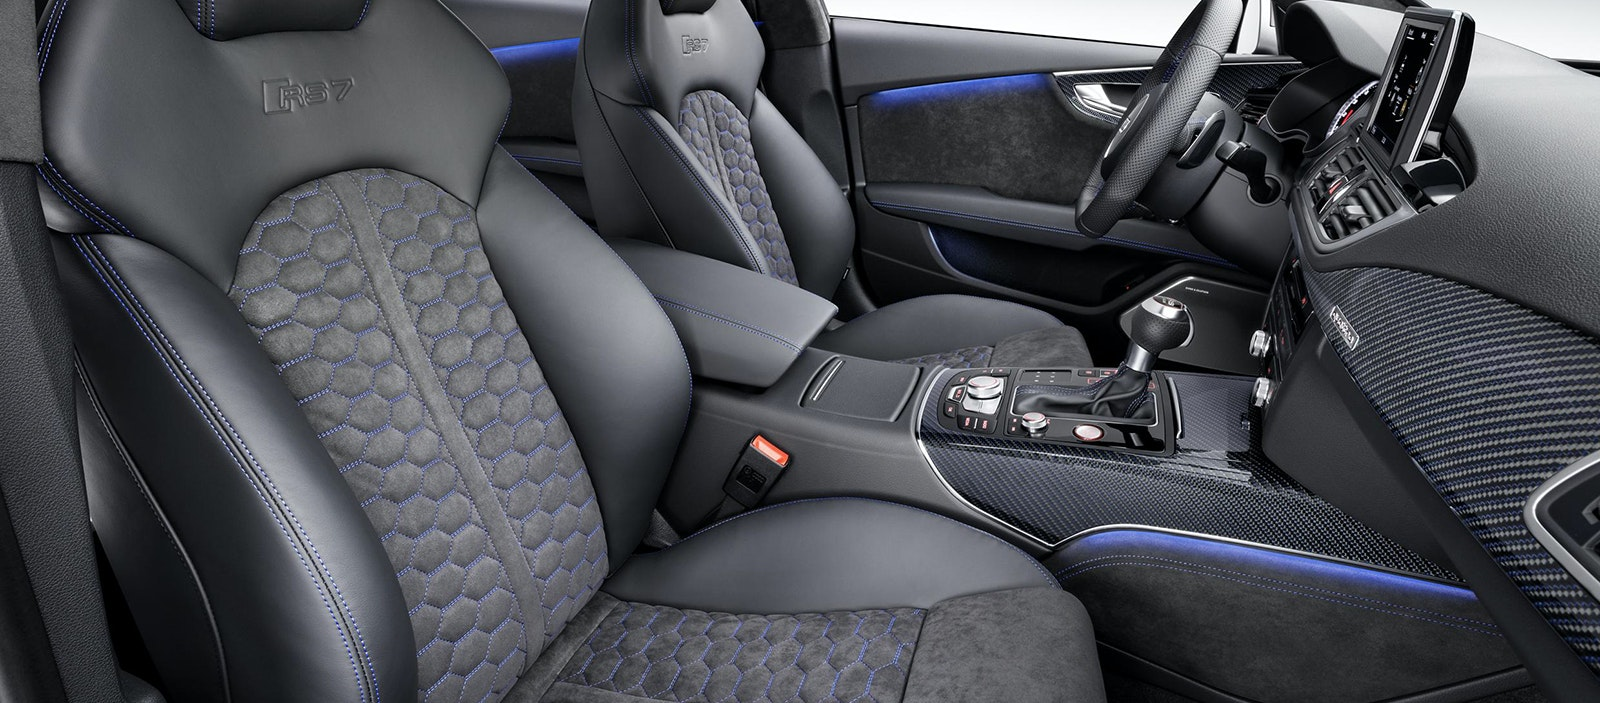 Leather seat materials